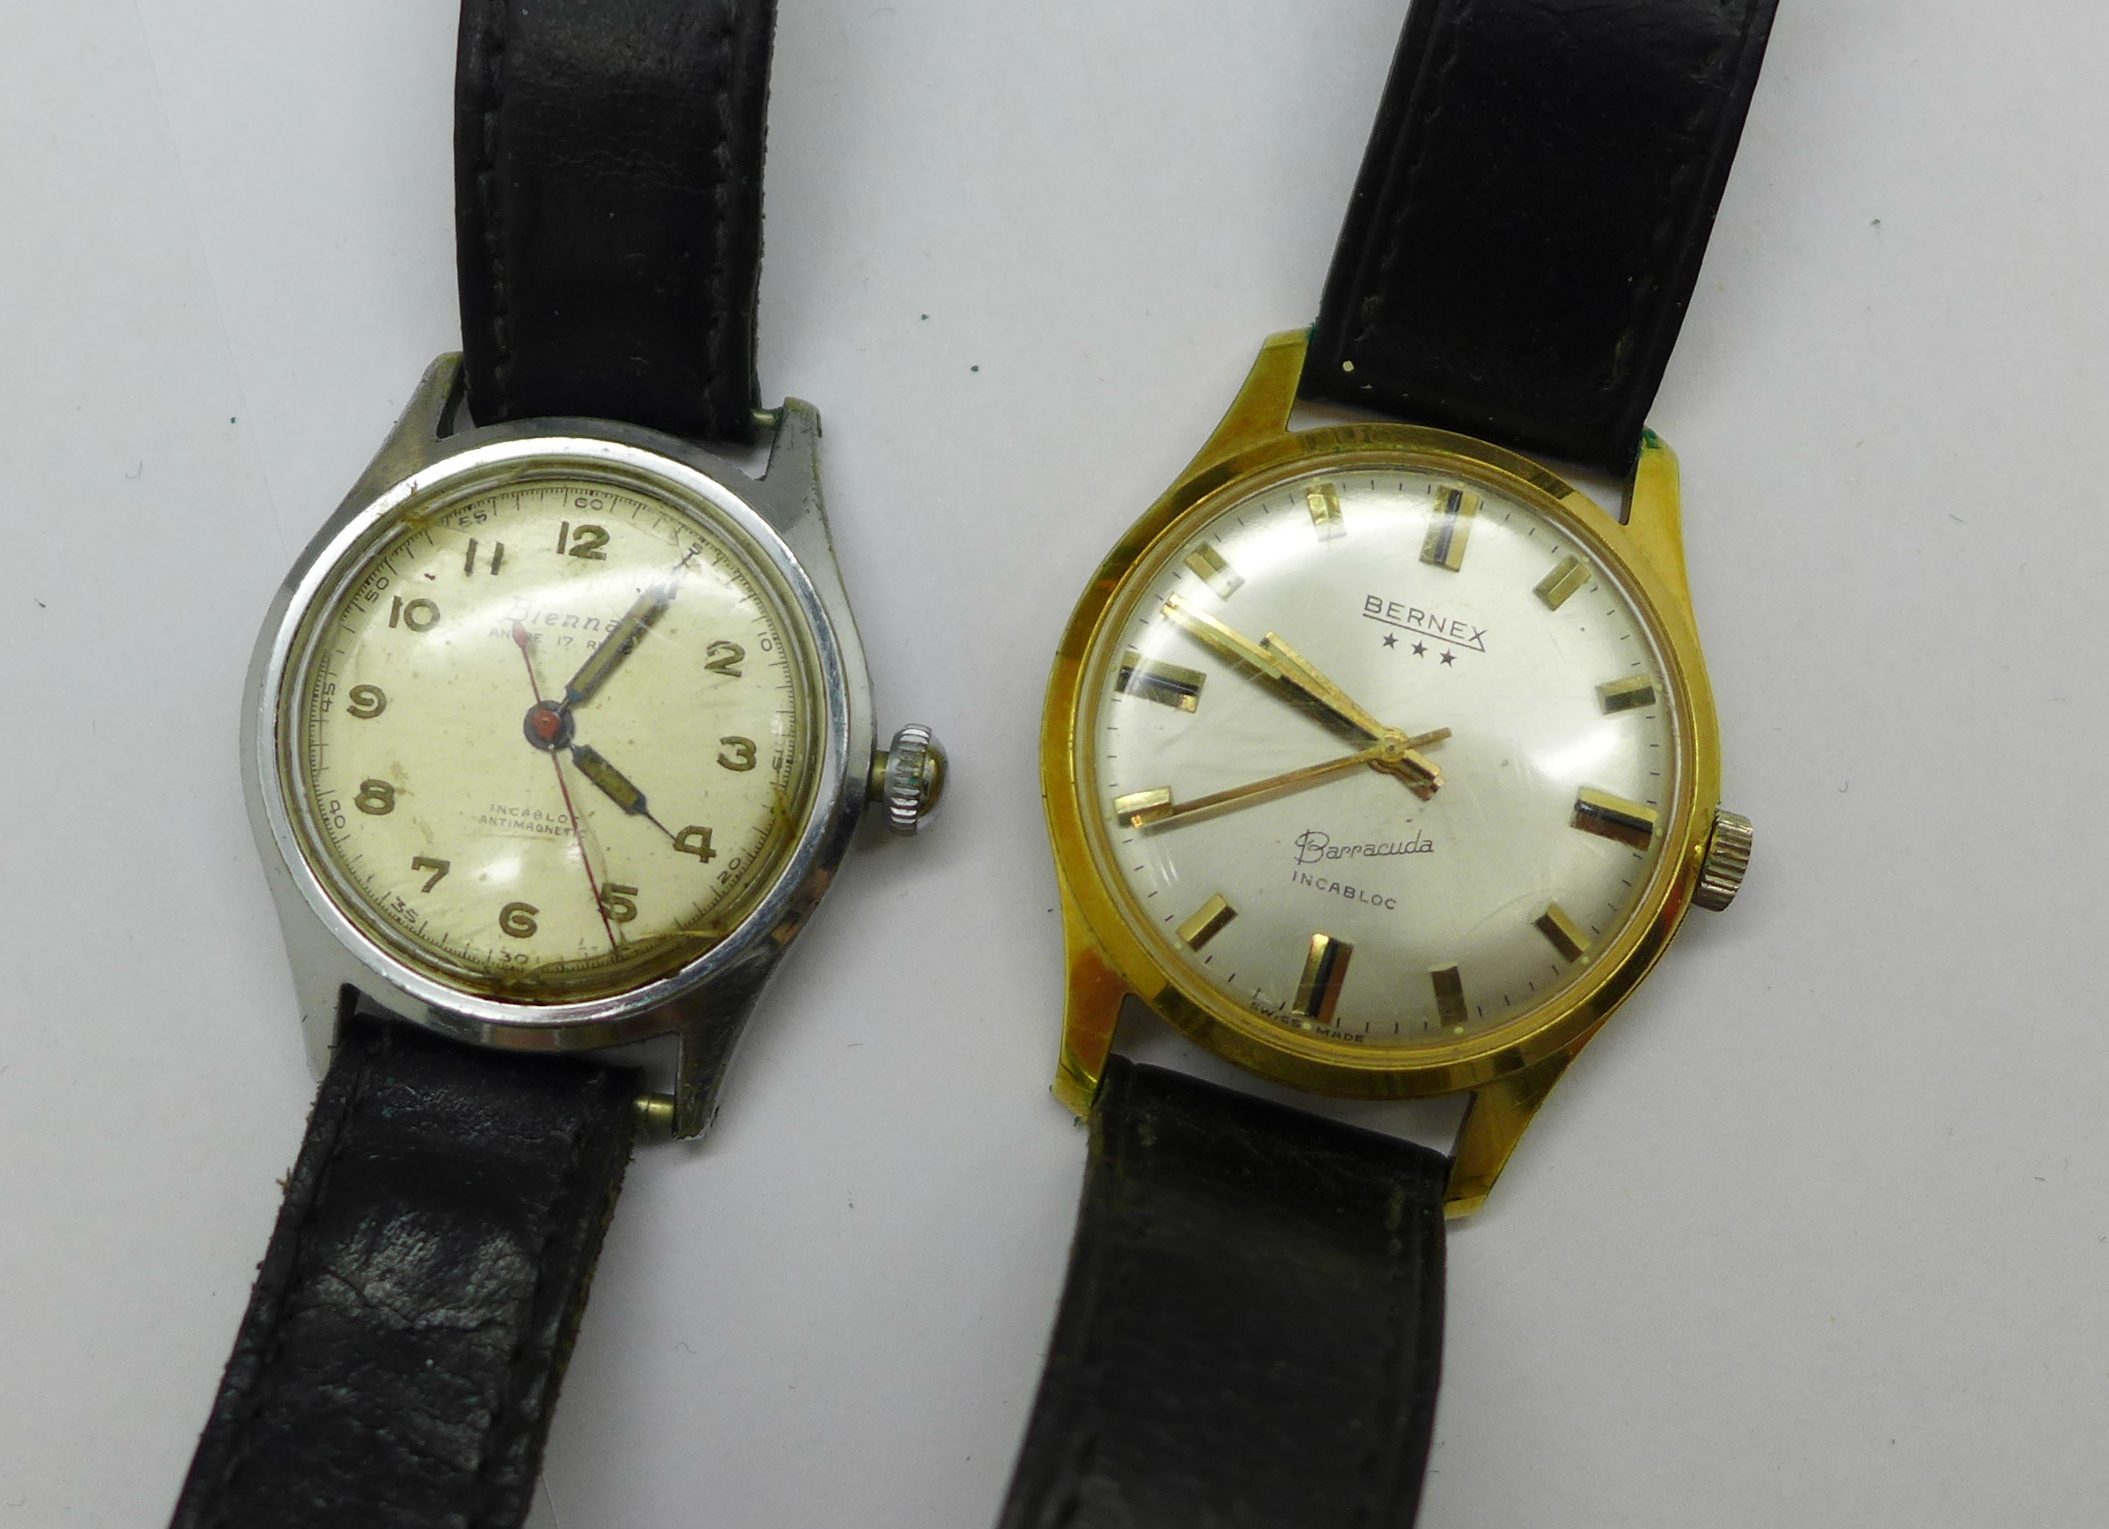 Five wristwatches including Bernex Barracuda and Ramona automatic - Image 4 of 5